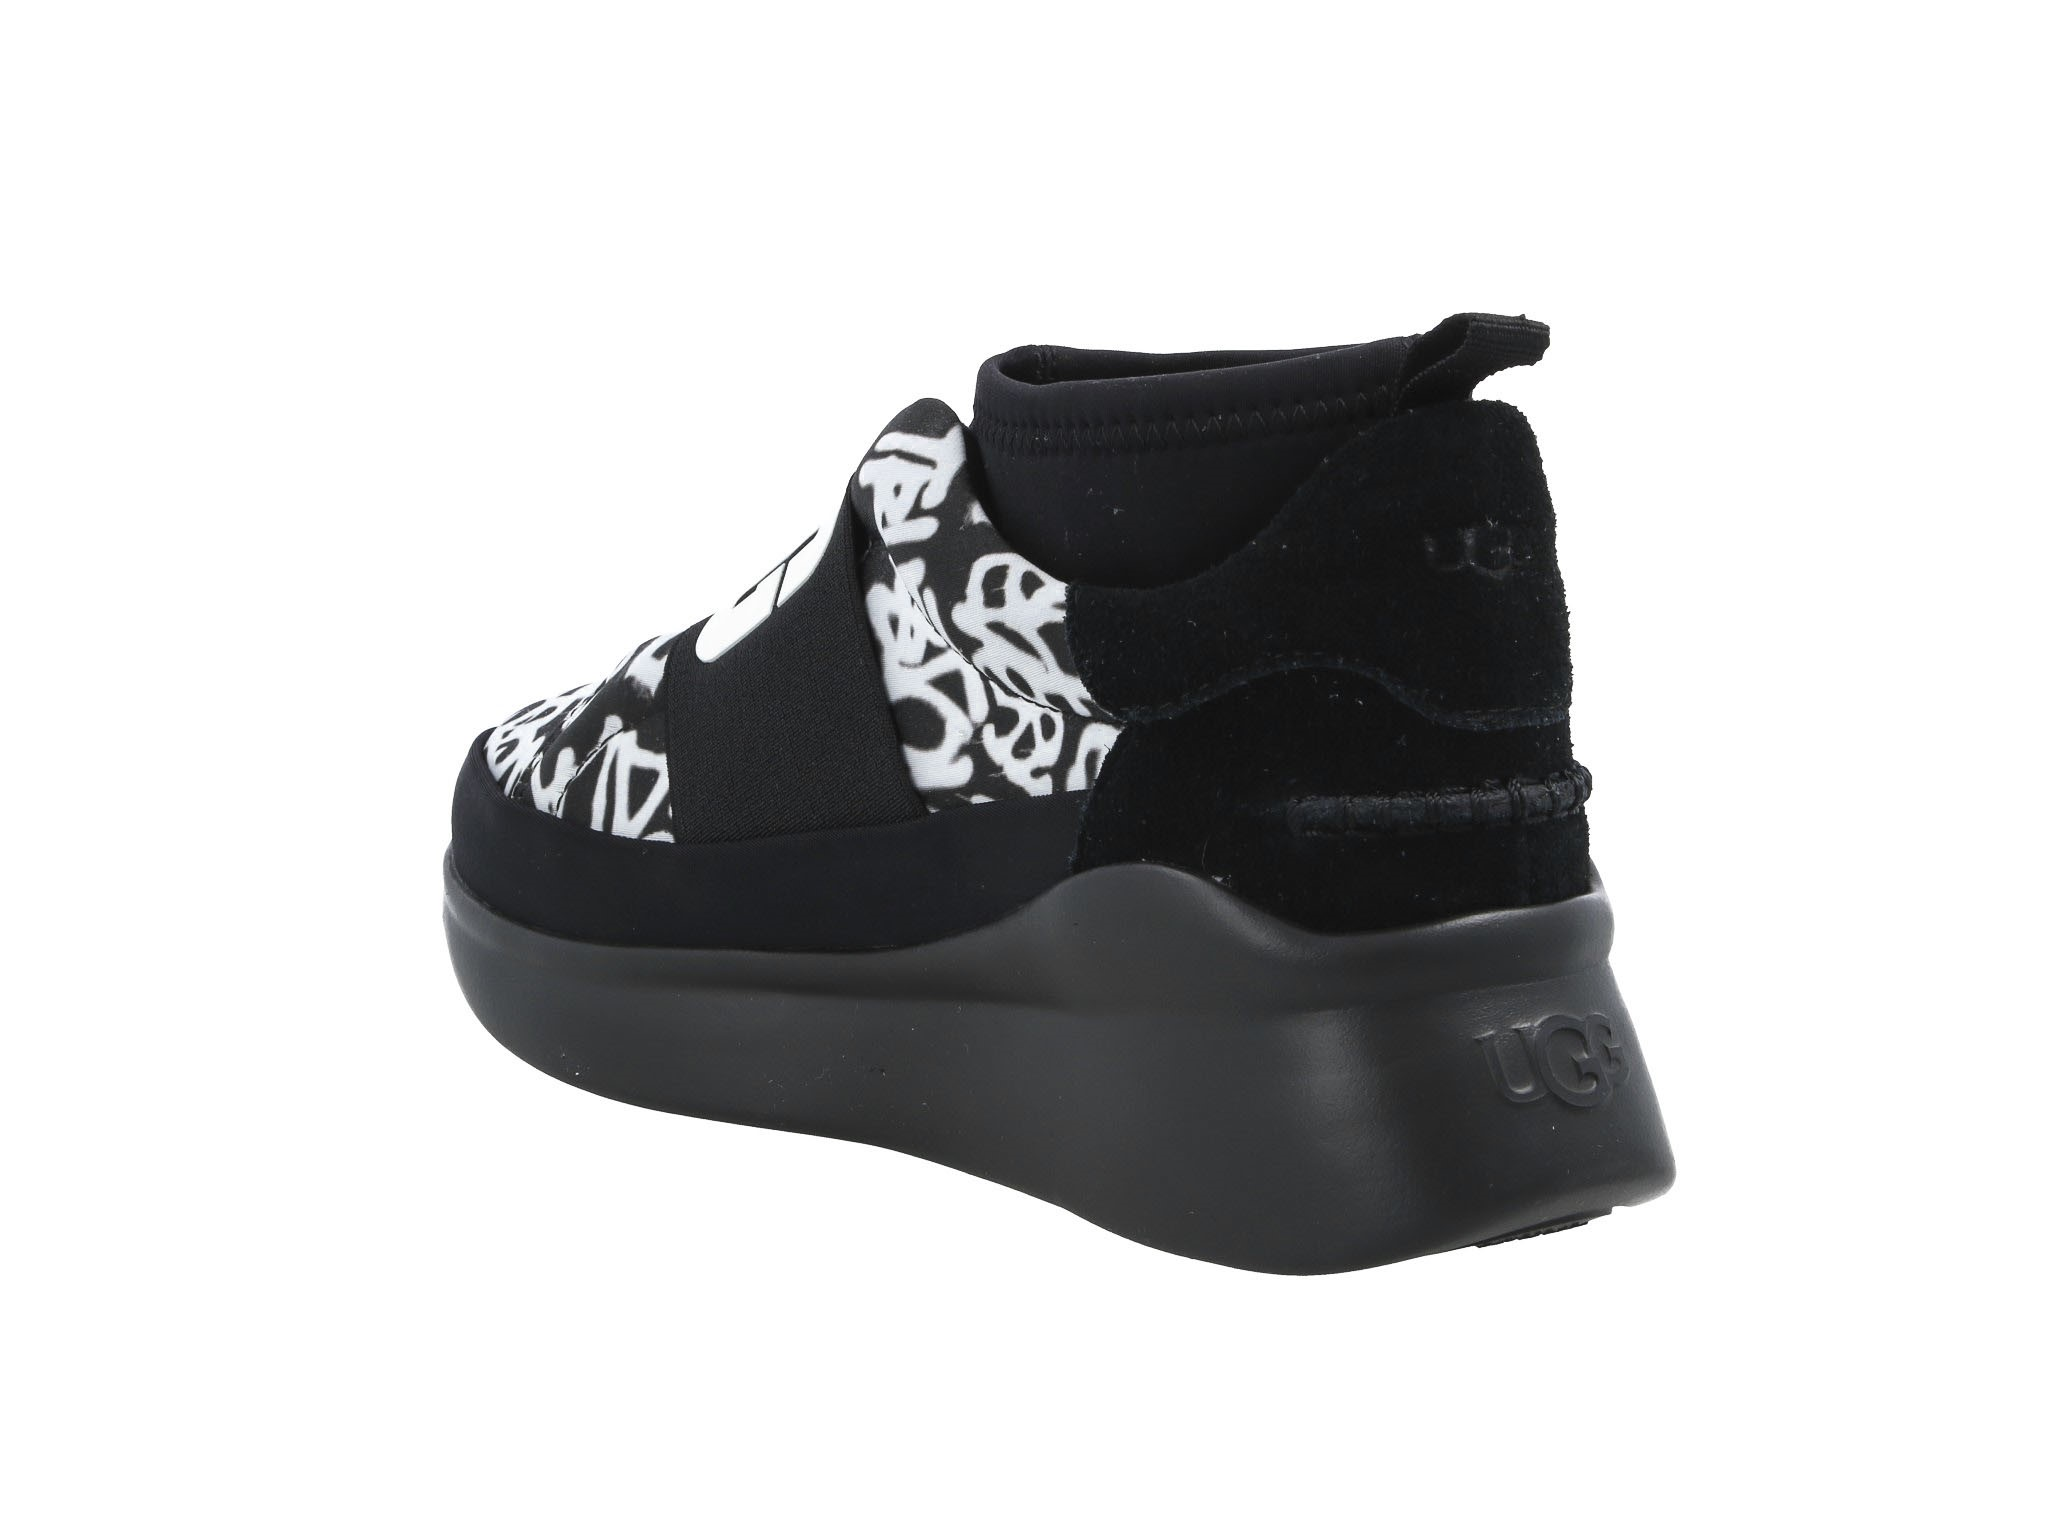 Sneakersy UGG W Neutra Sneaker Graffiti Pop 1106737 Bkw